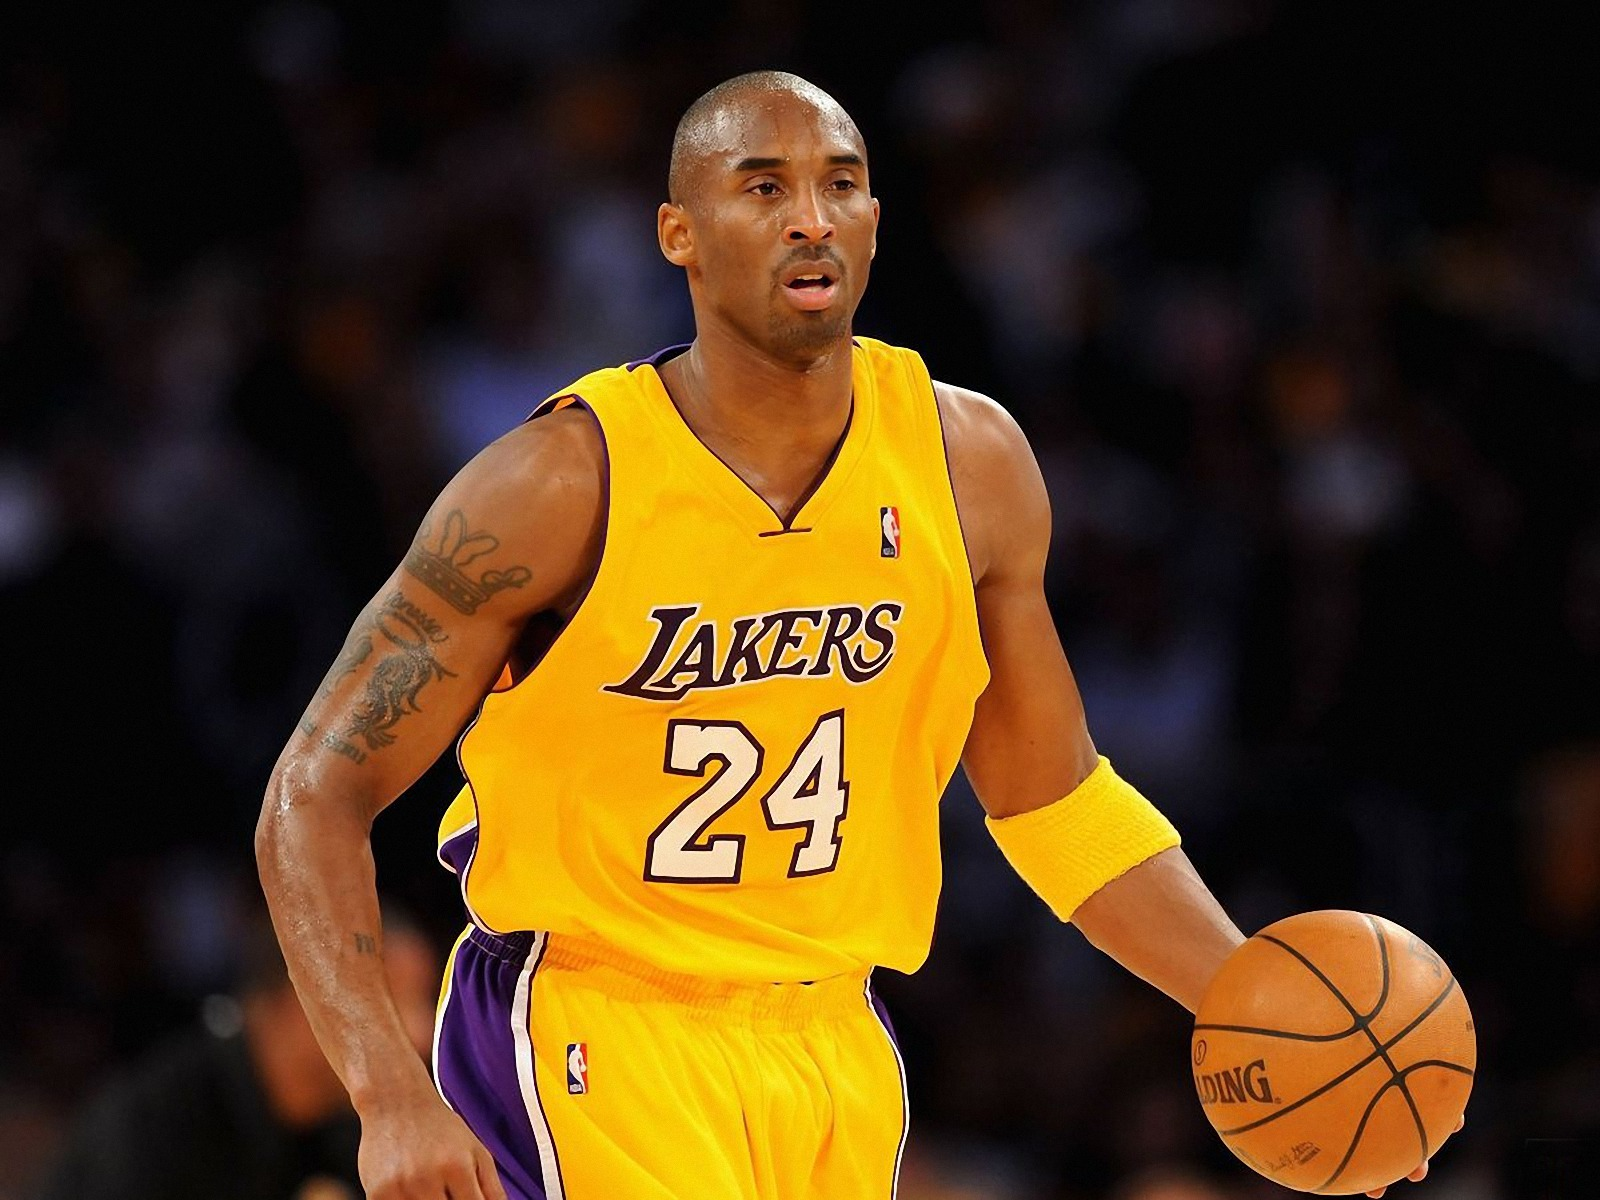 Kobe Bryant Says NBA Players and Owners are Overpaid